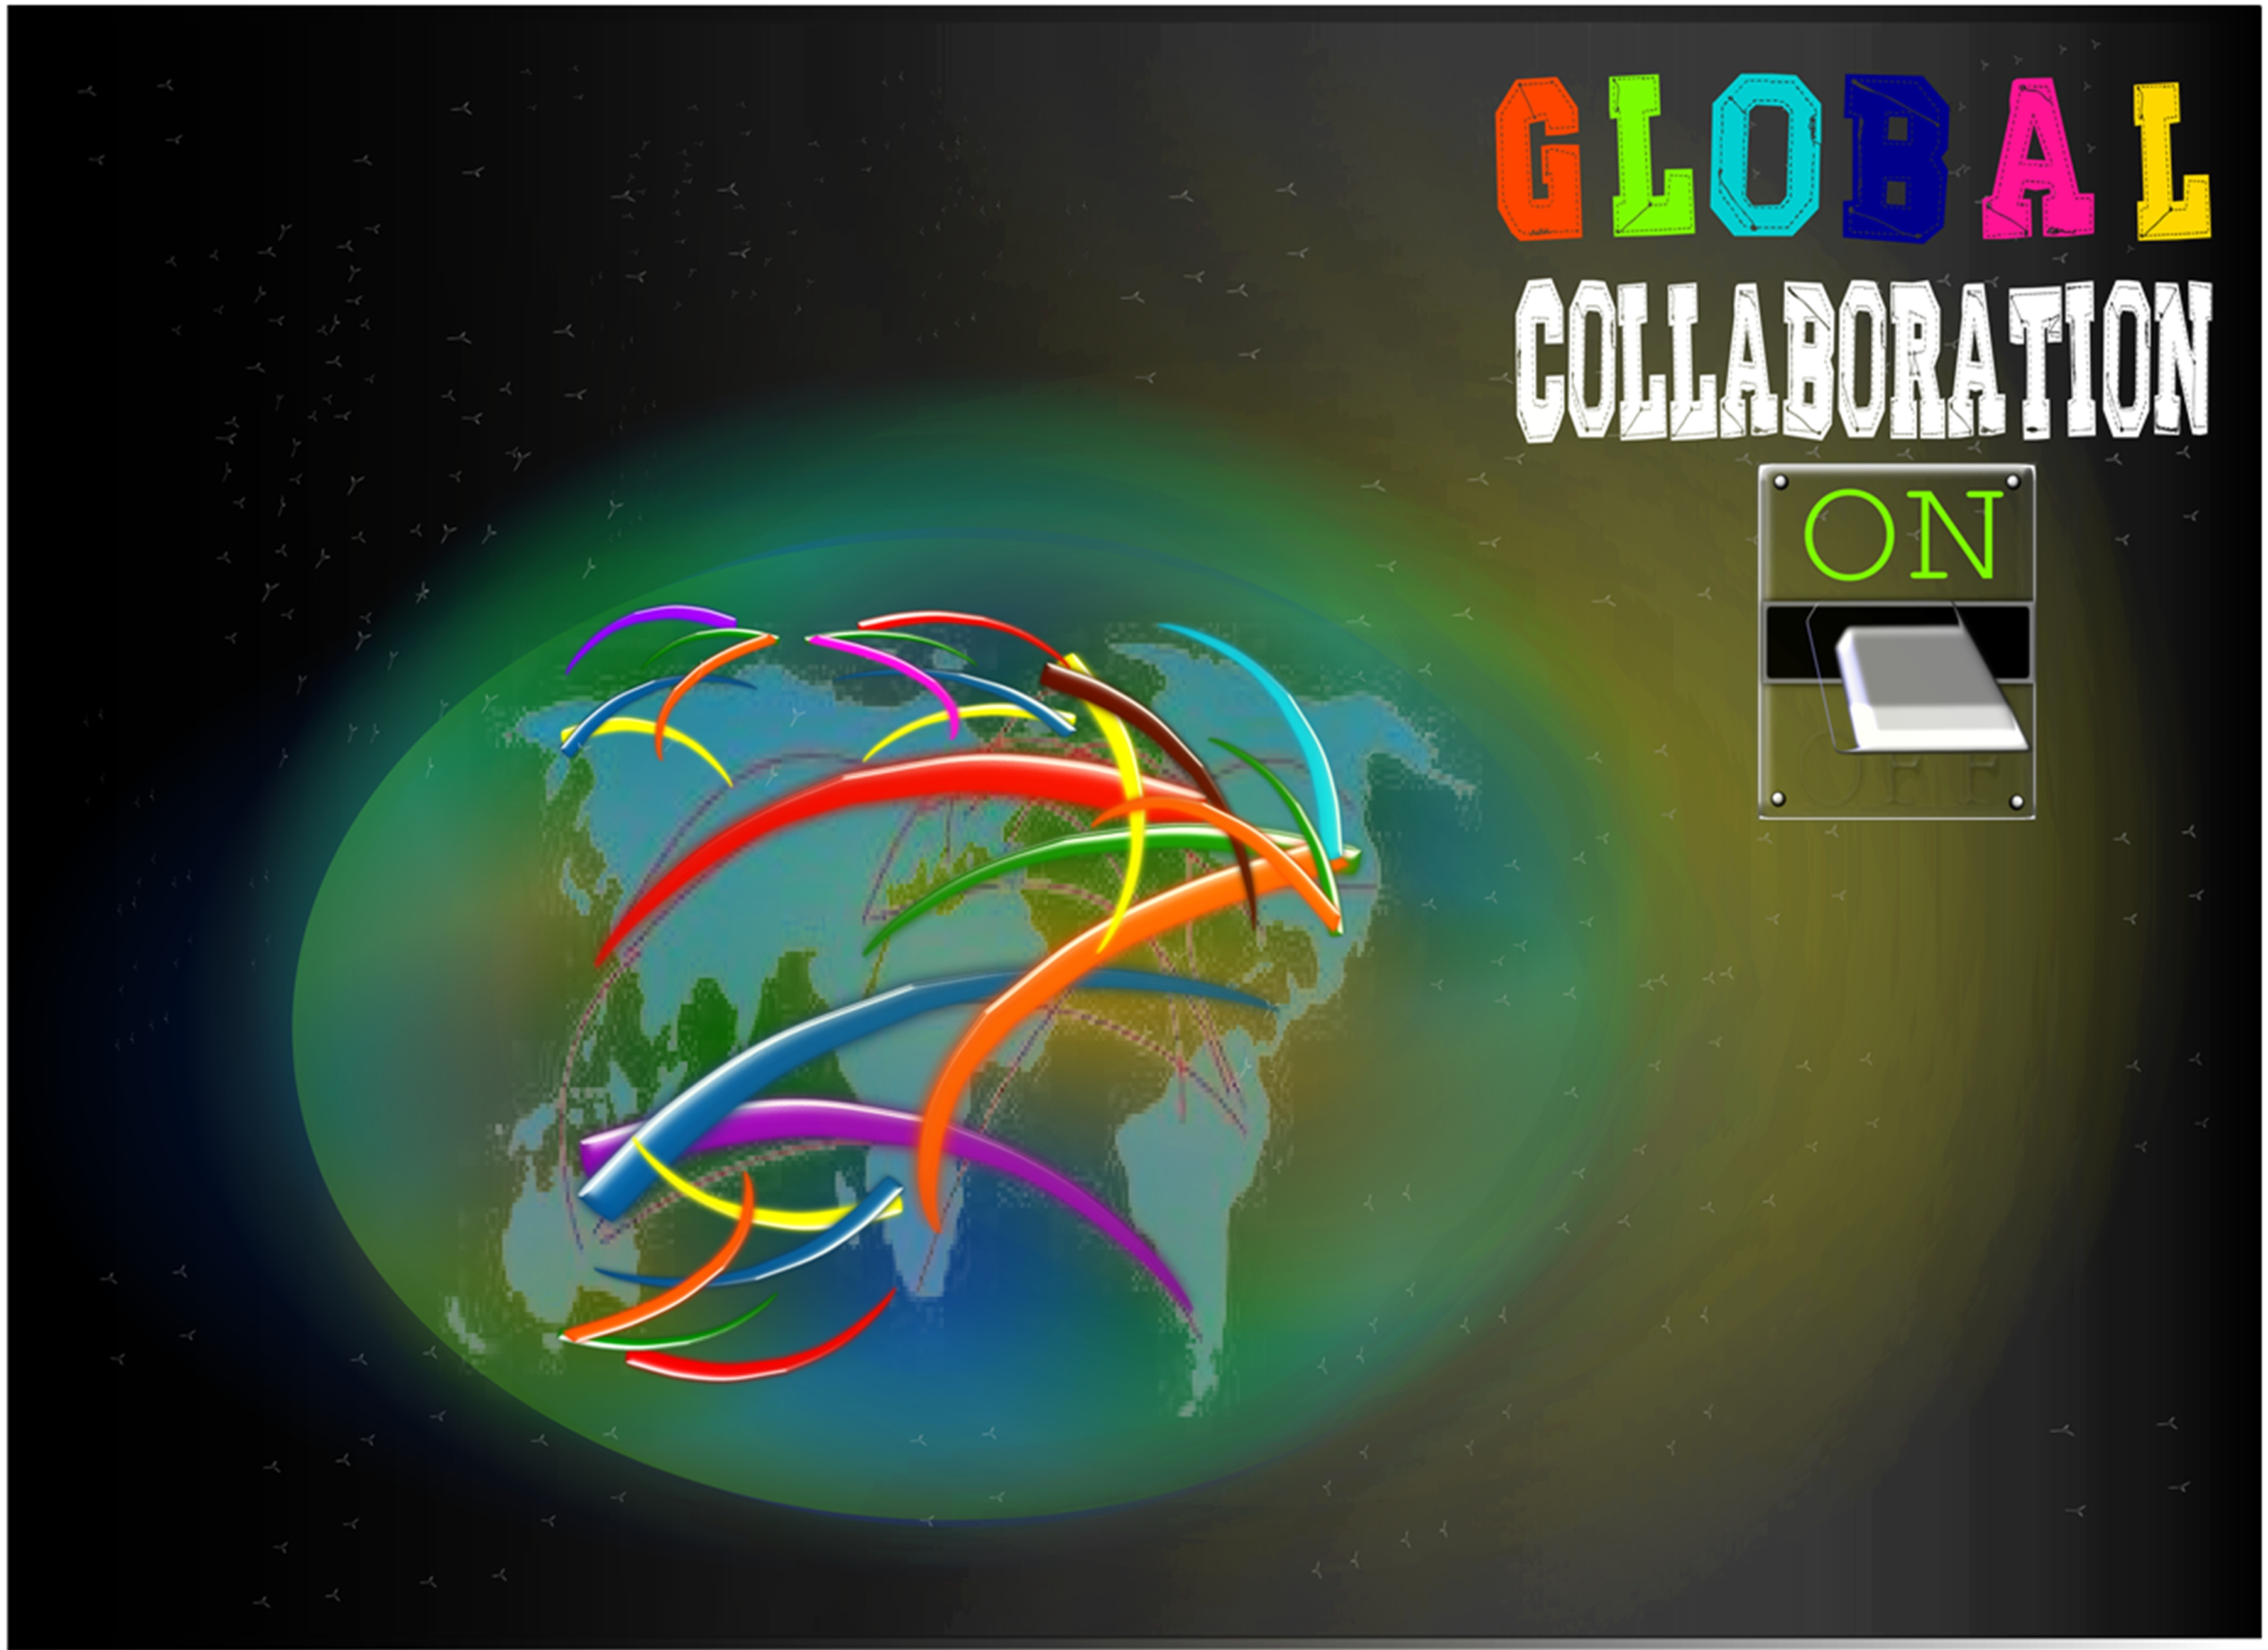 global-collaboration-image-01-with-gc-caption-1.jpg